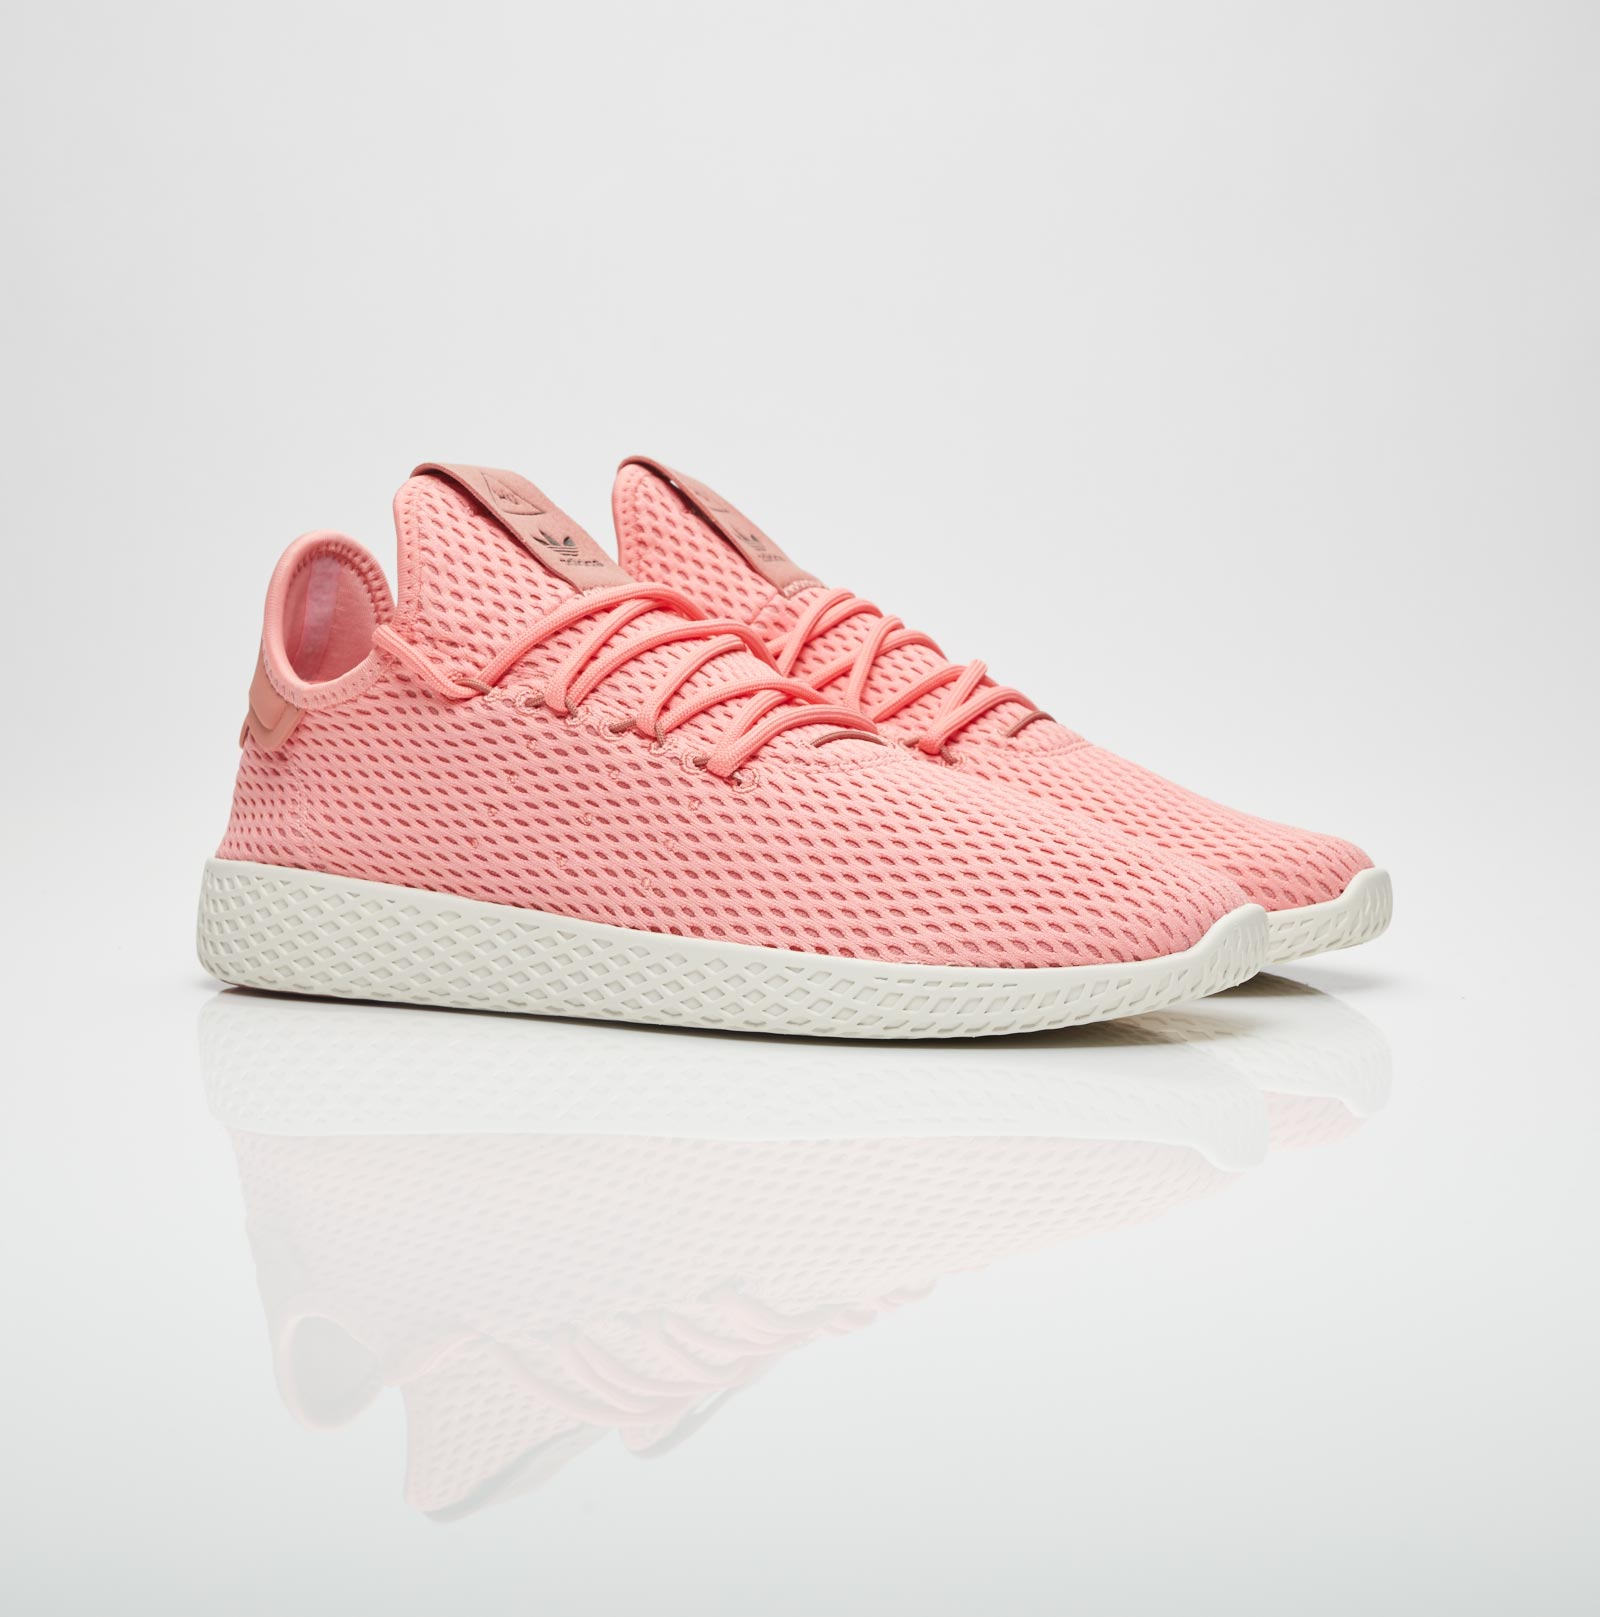 Adidas by pharrell williams PW Tennis HU